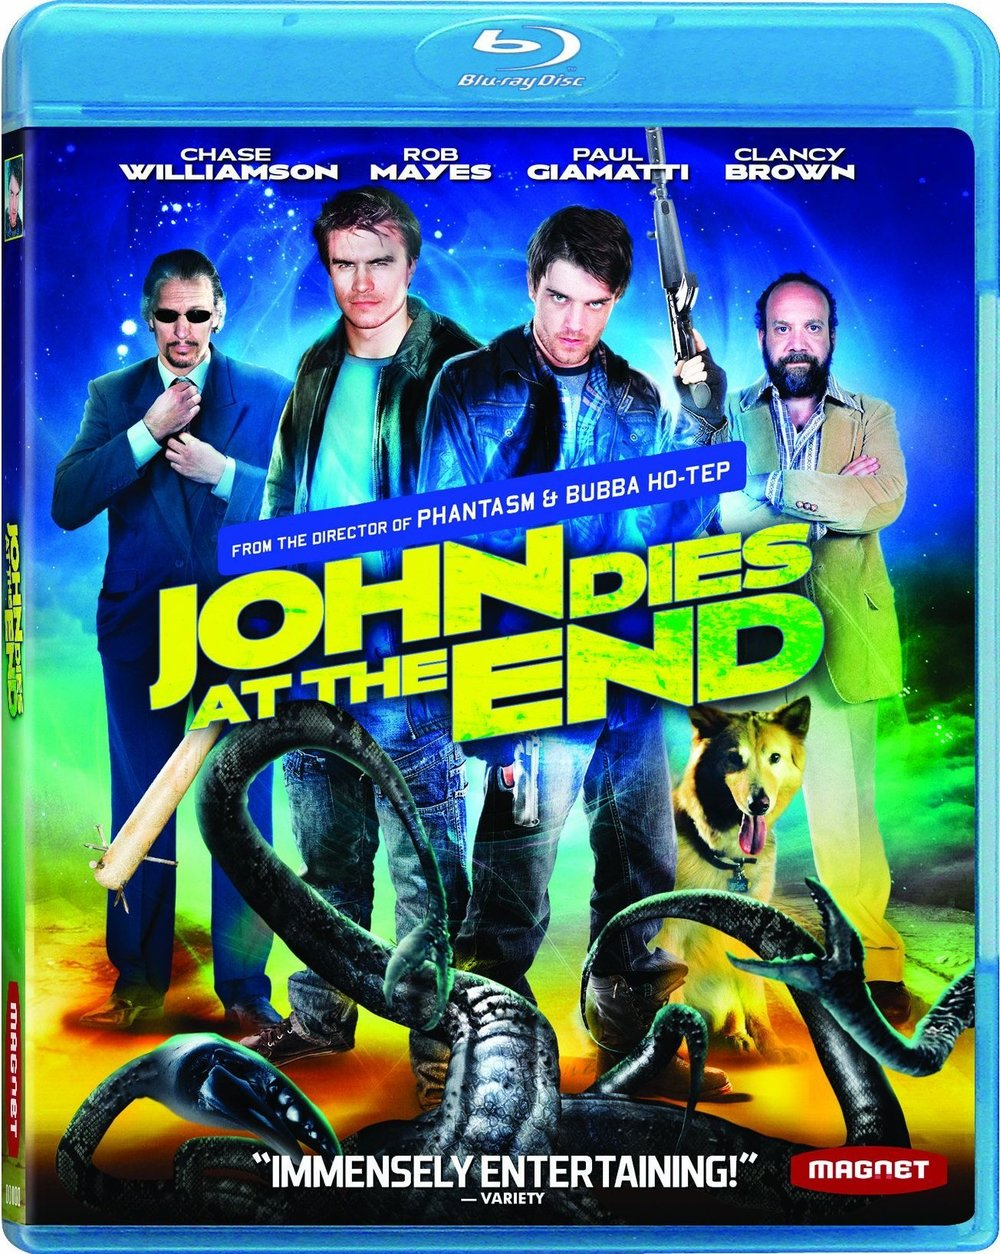 john-dies-at-the-end-blu-ray-blu-ray-cover-88.jpg